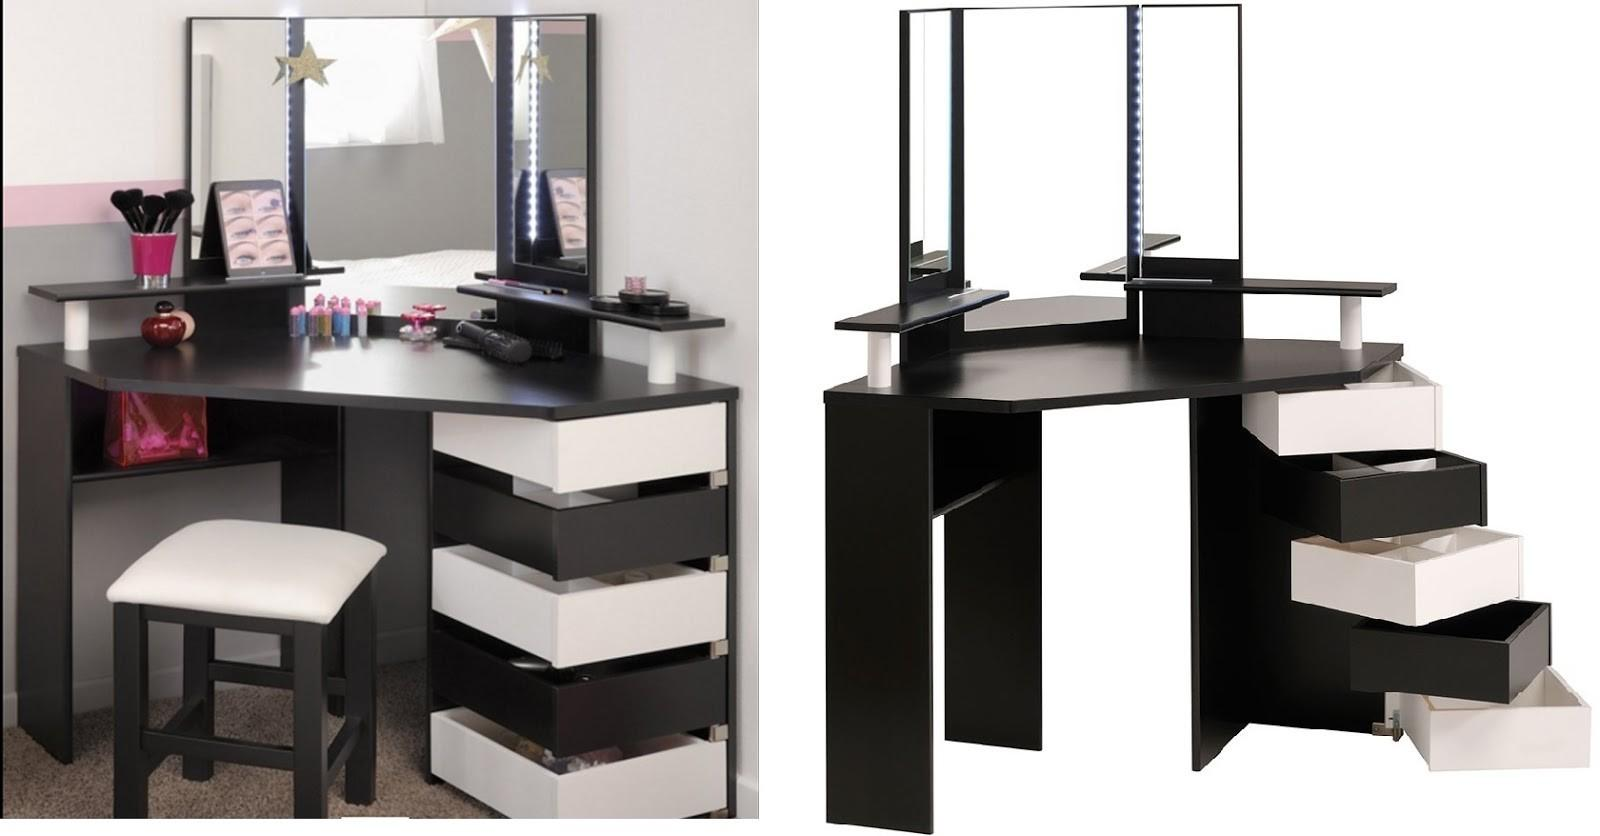 Eccentric Modern Black White Industrial Small Vanity Desk